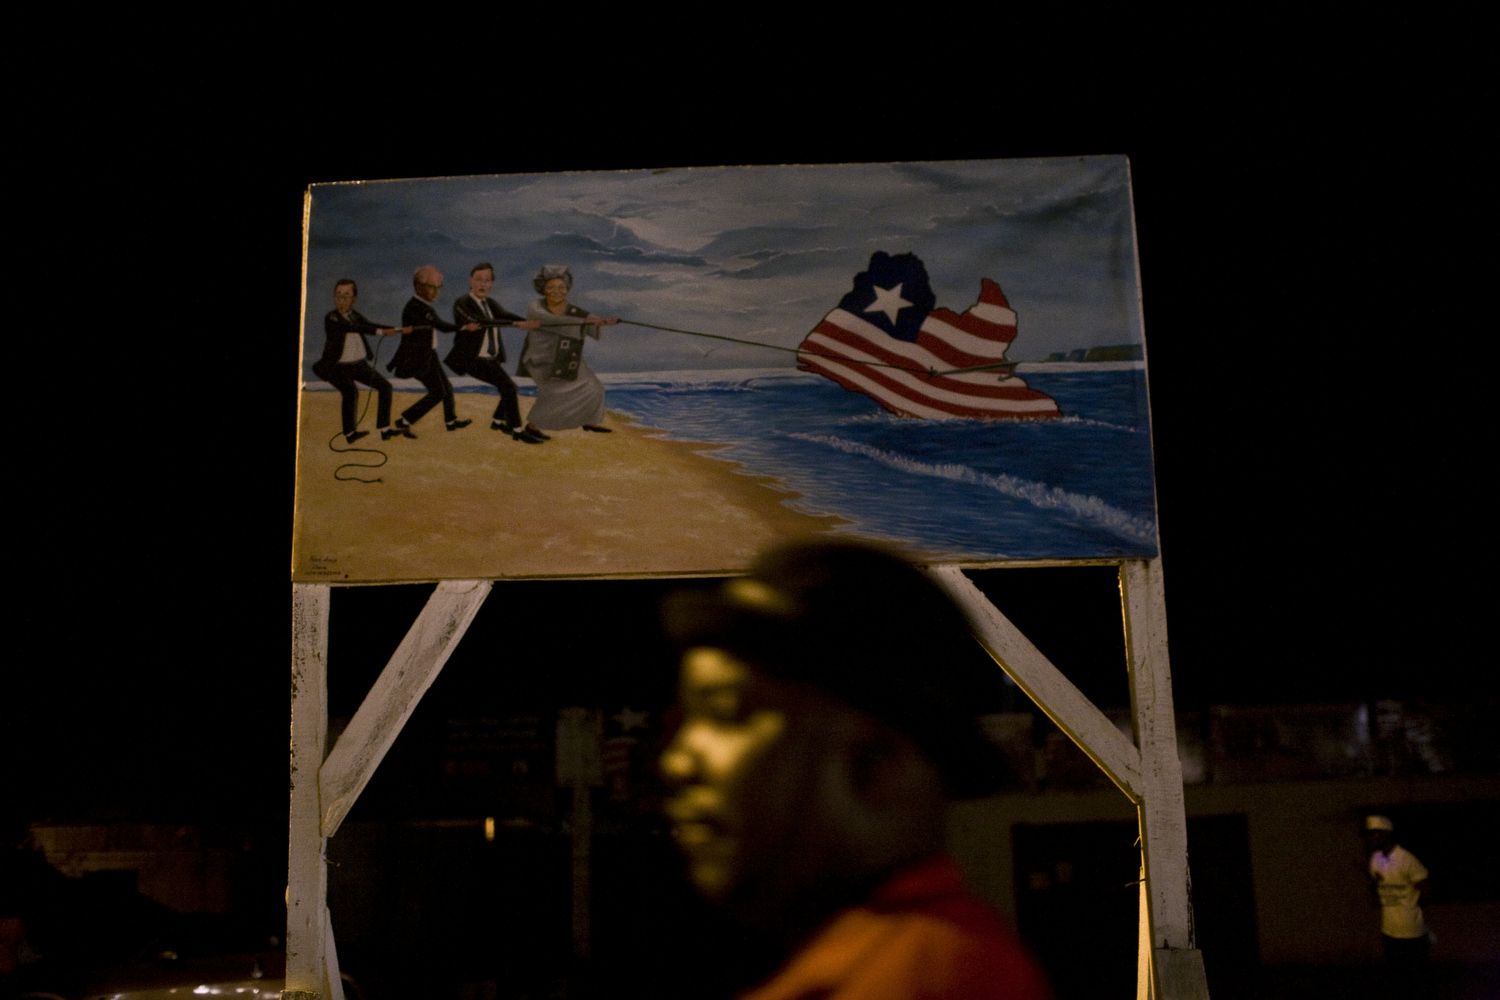 A signboard depicts President Ellen Johnson Sirleaf helping to save Liberia.